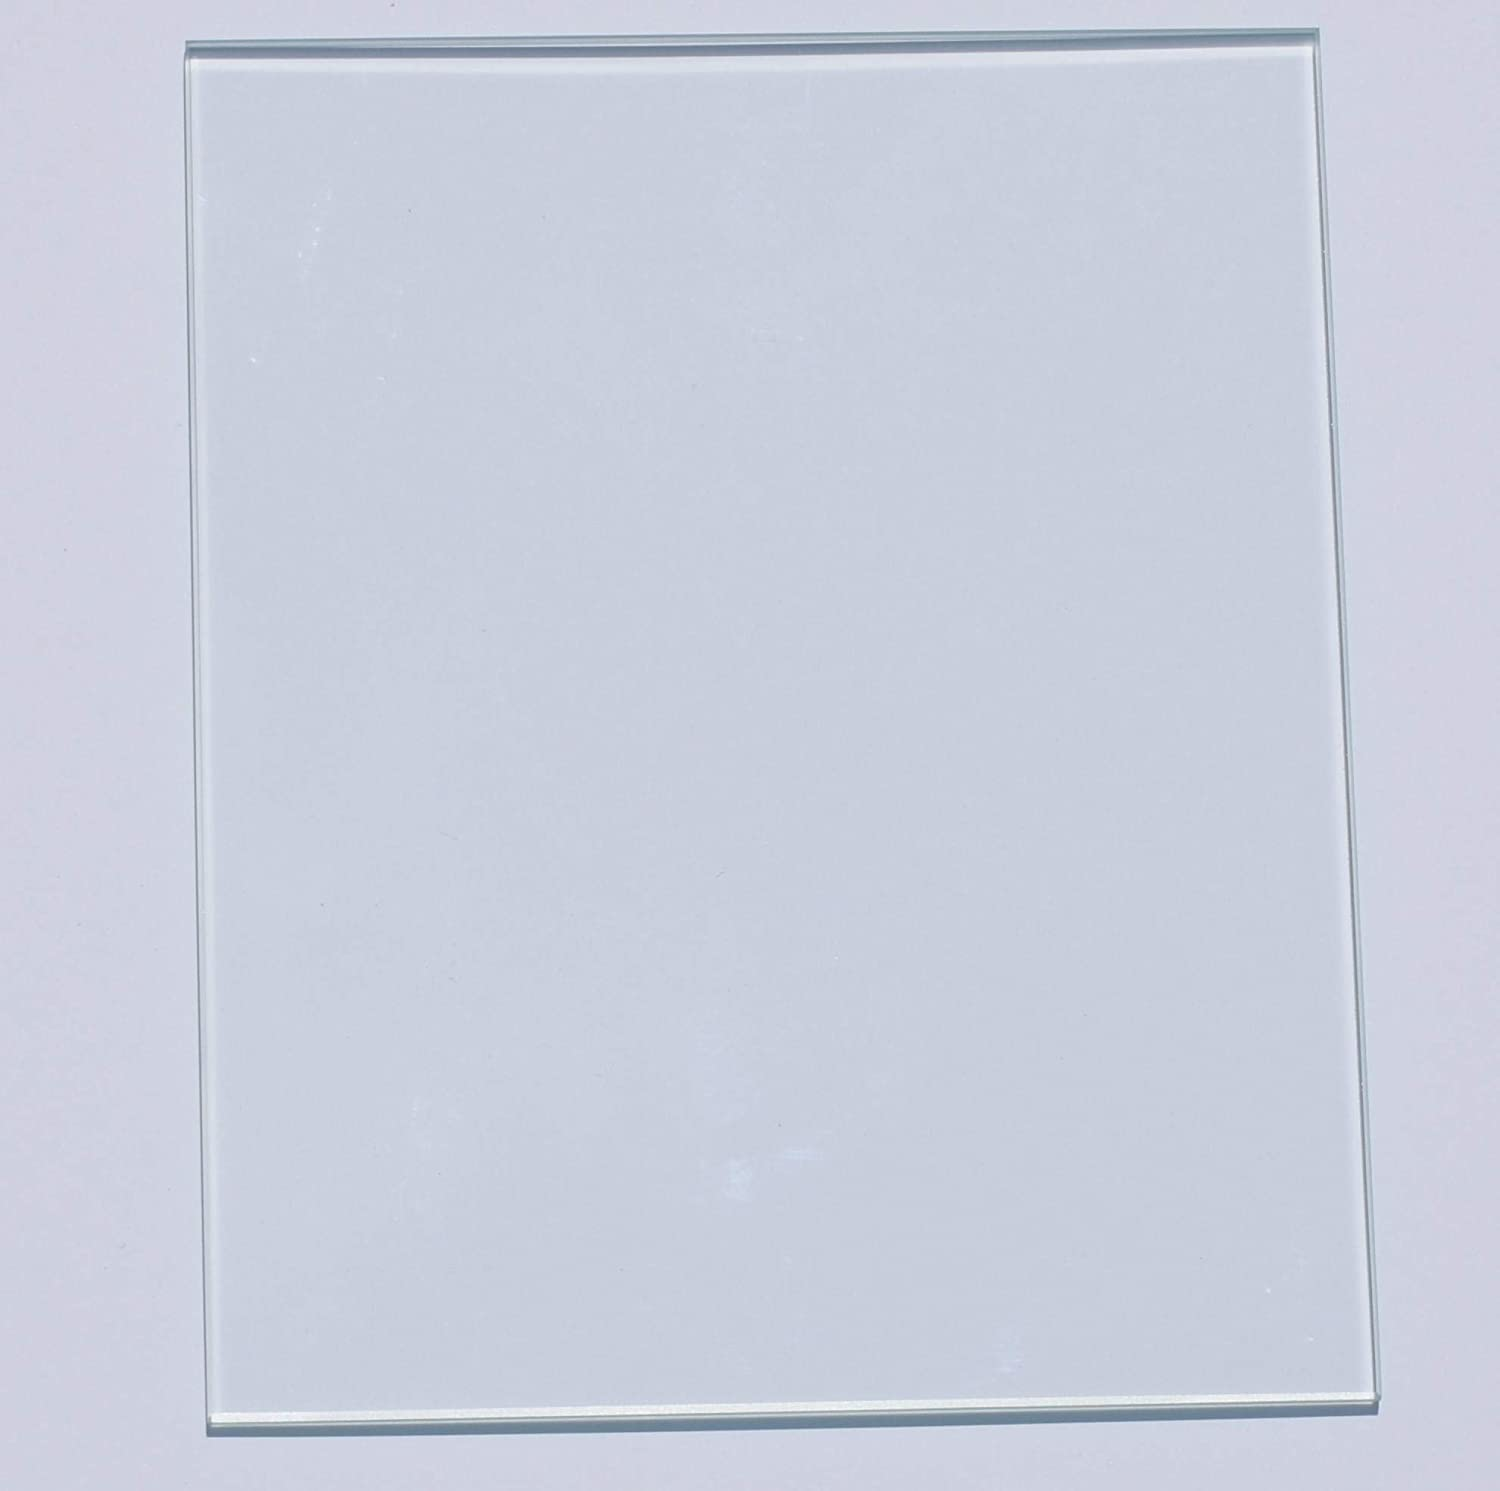 ReliaBot 130mm x 160mm 3mm Thick Borosilicate Glass Plate Bed Polished Edge Corners Cut for Monoprice MP Select Mini 3D Printer